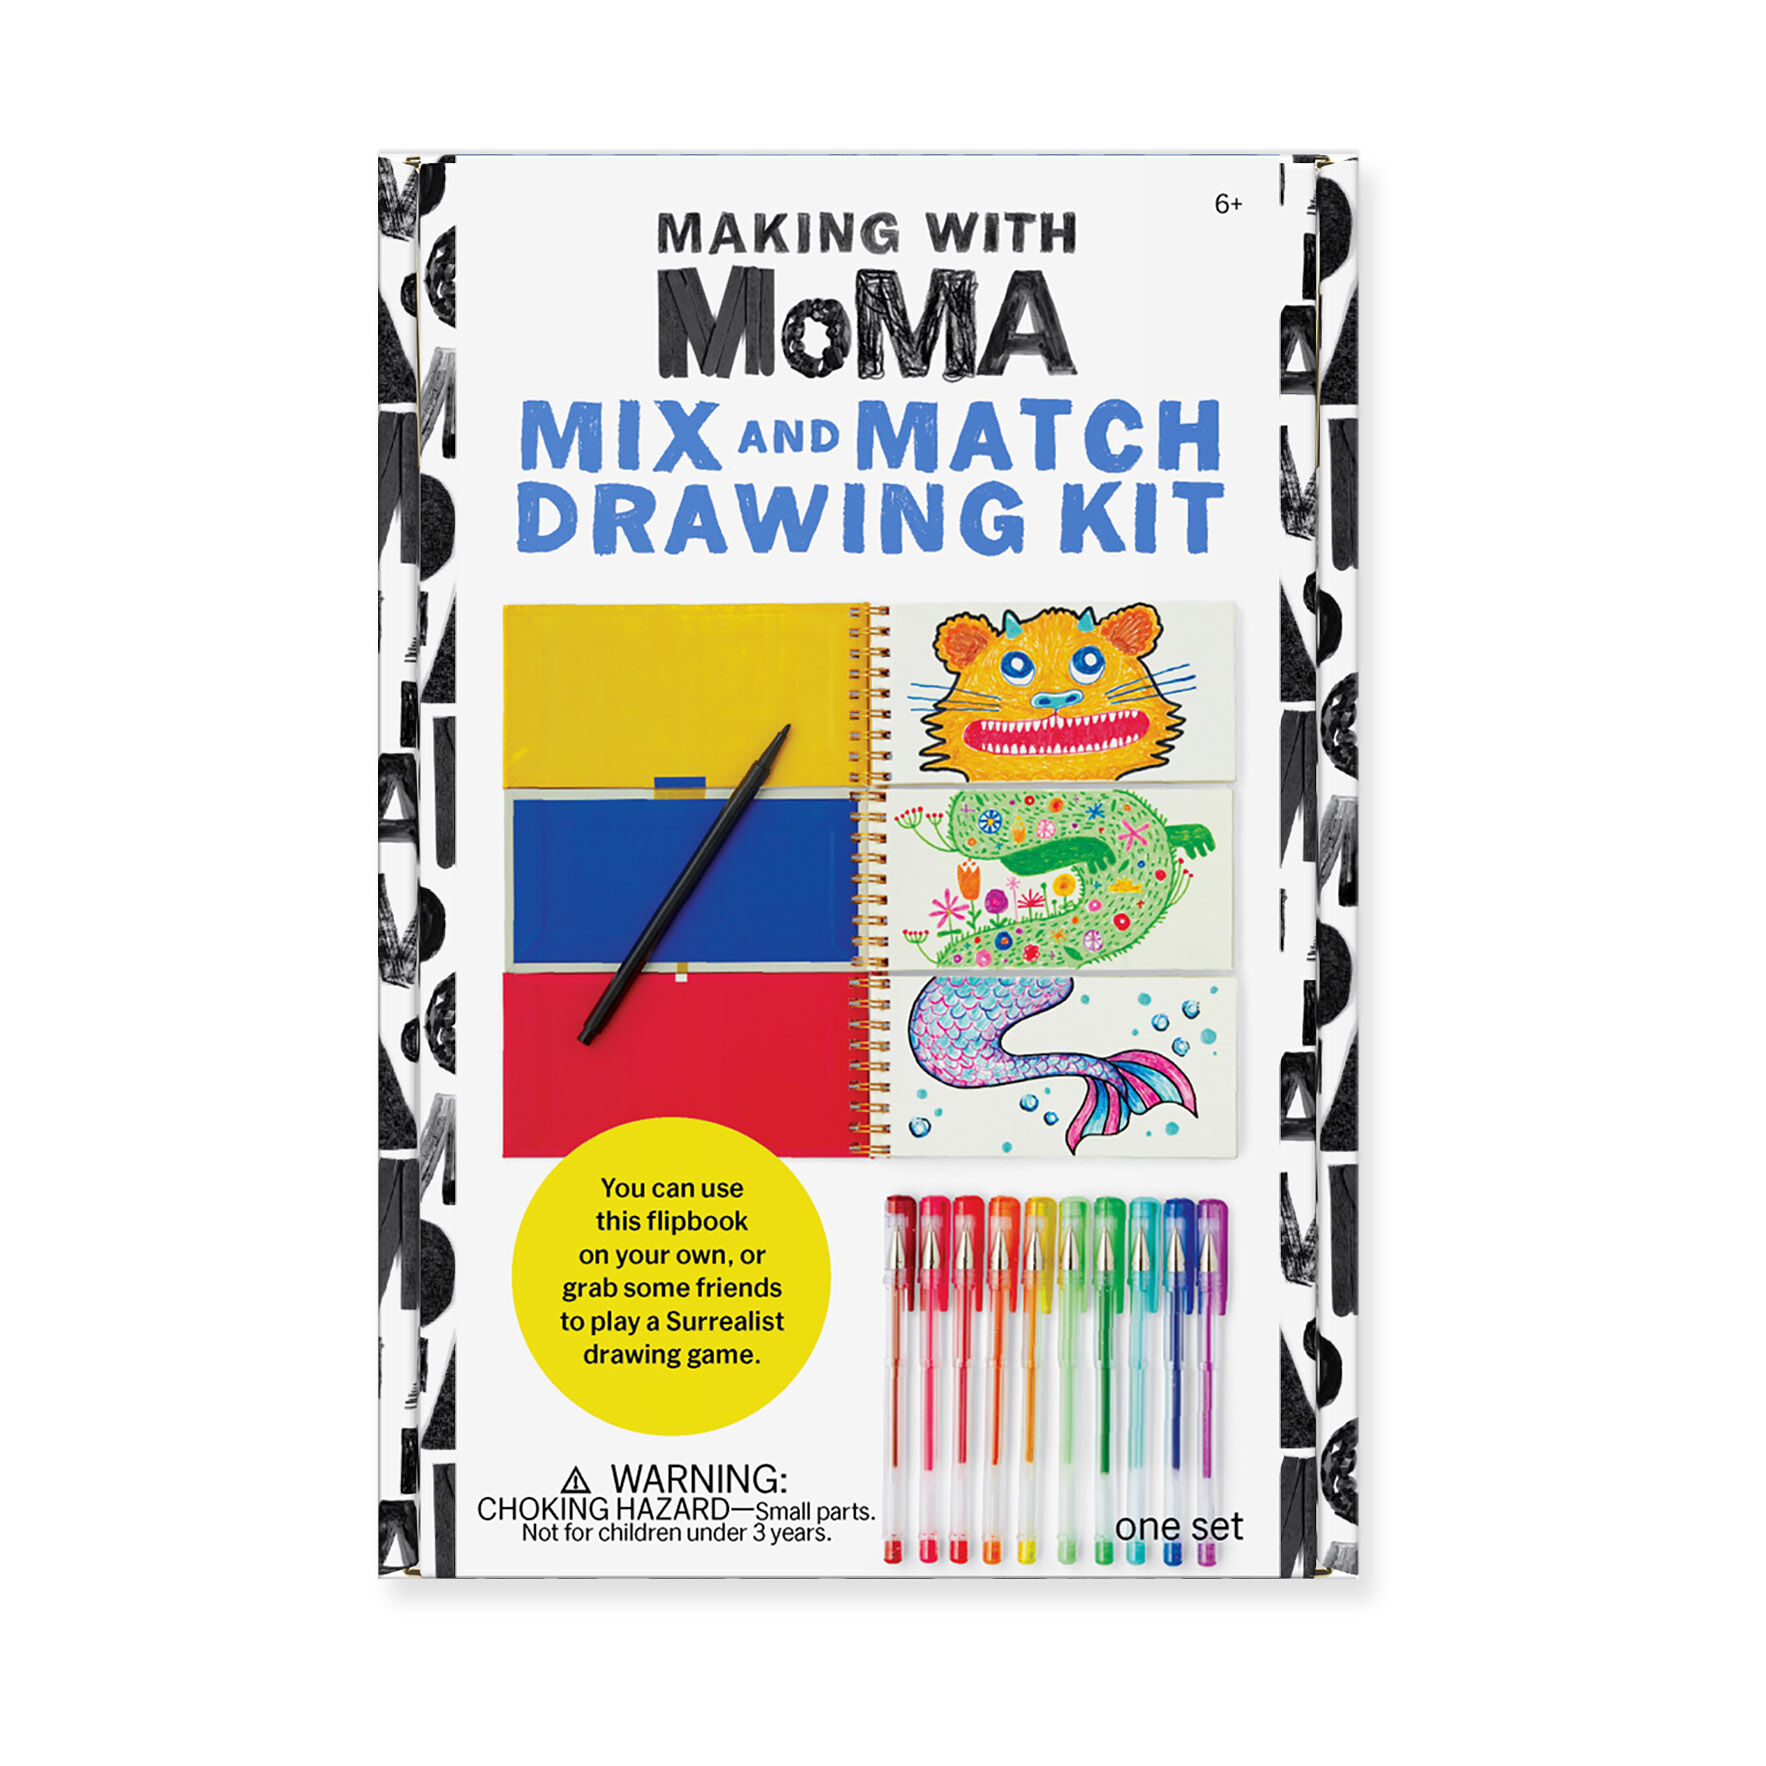 Mix And Match Making With Moma Mix And Match Drawing Book